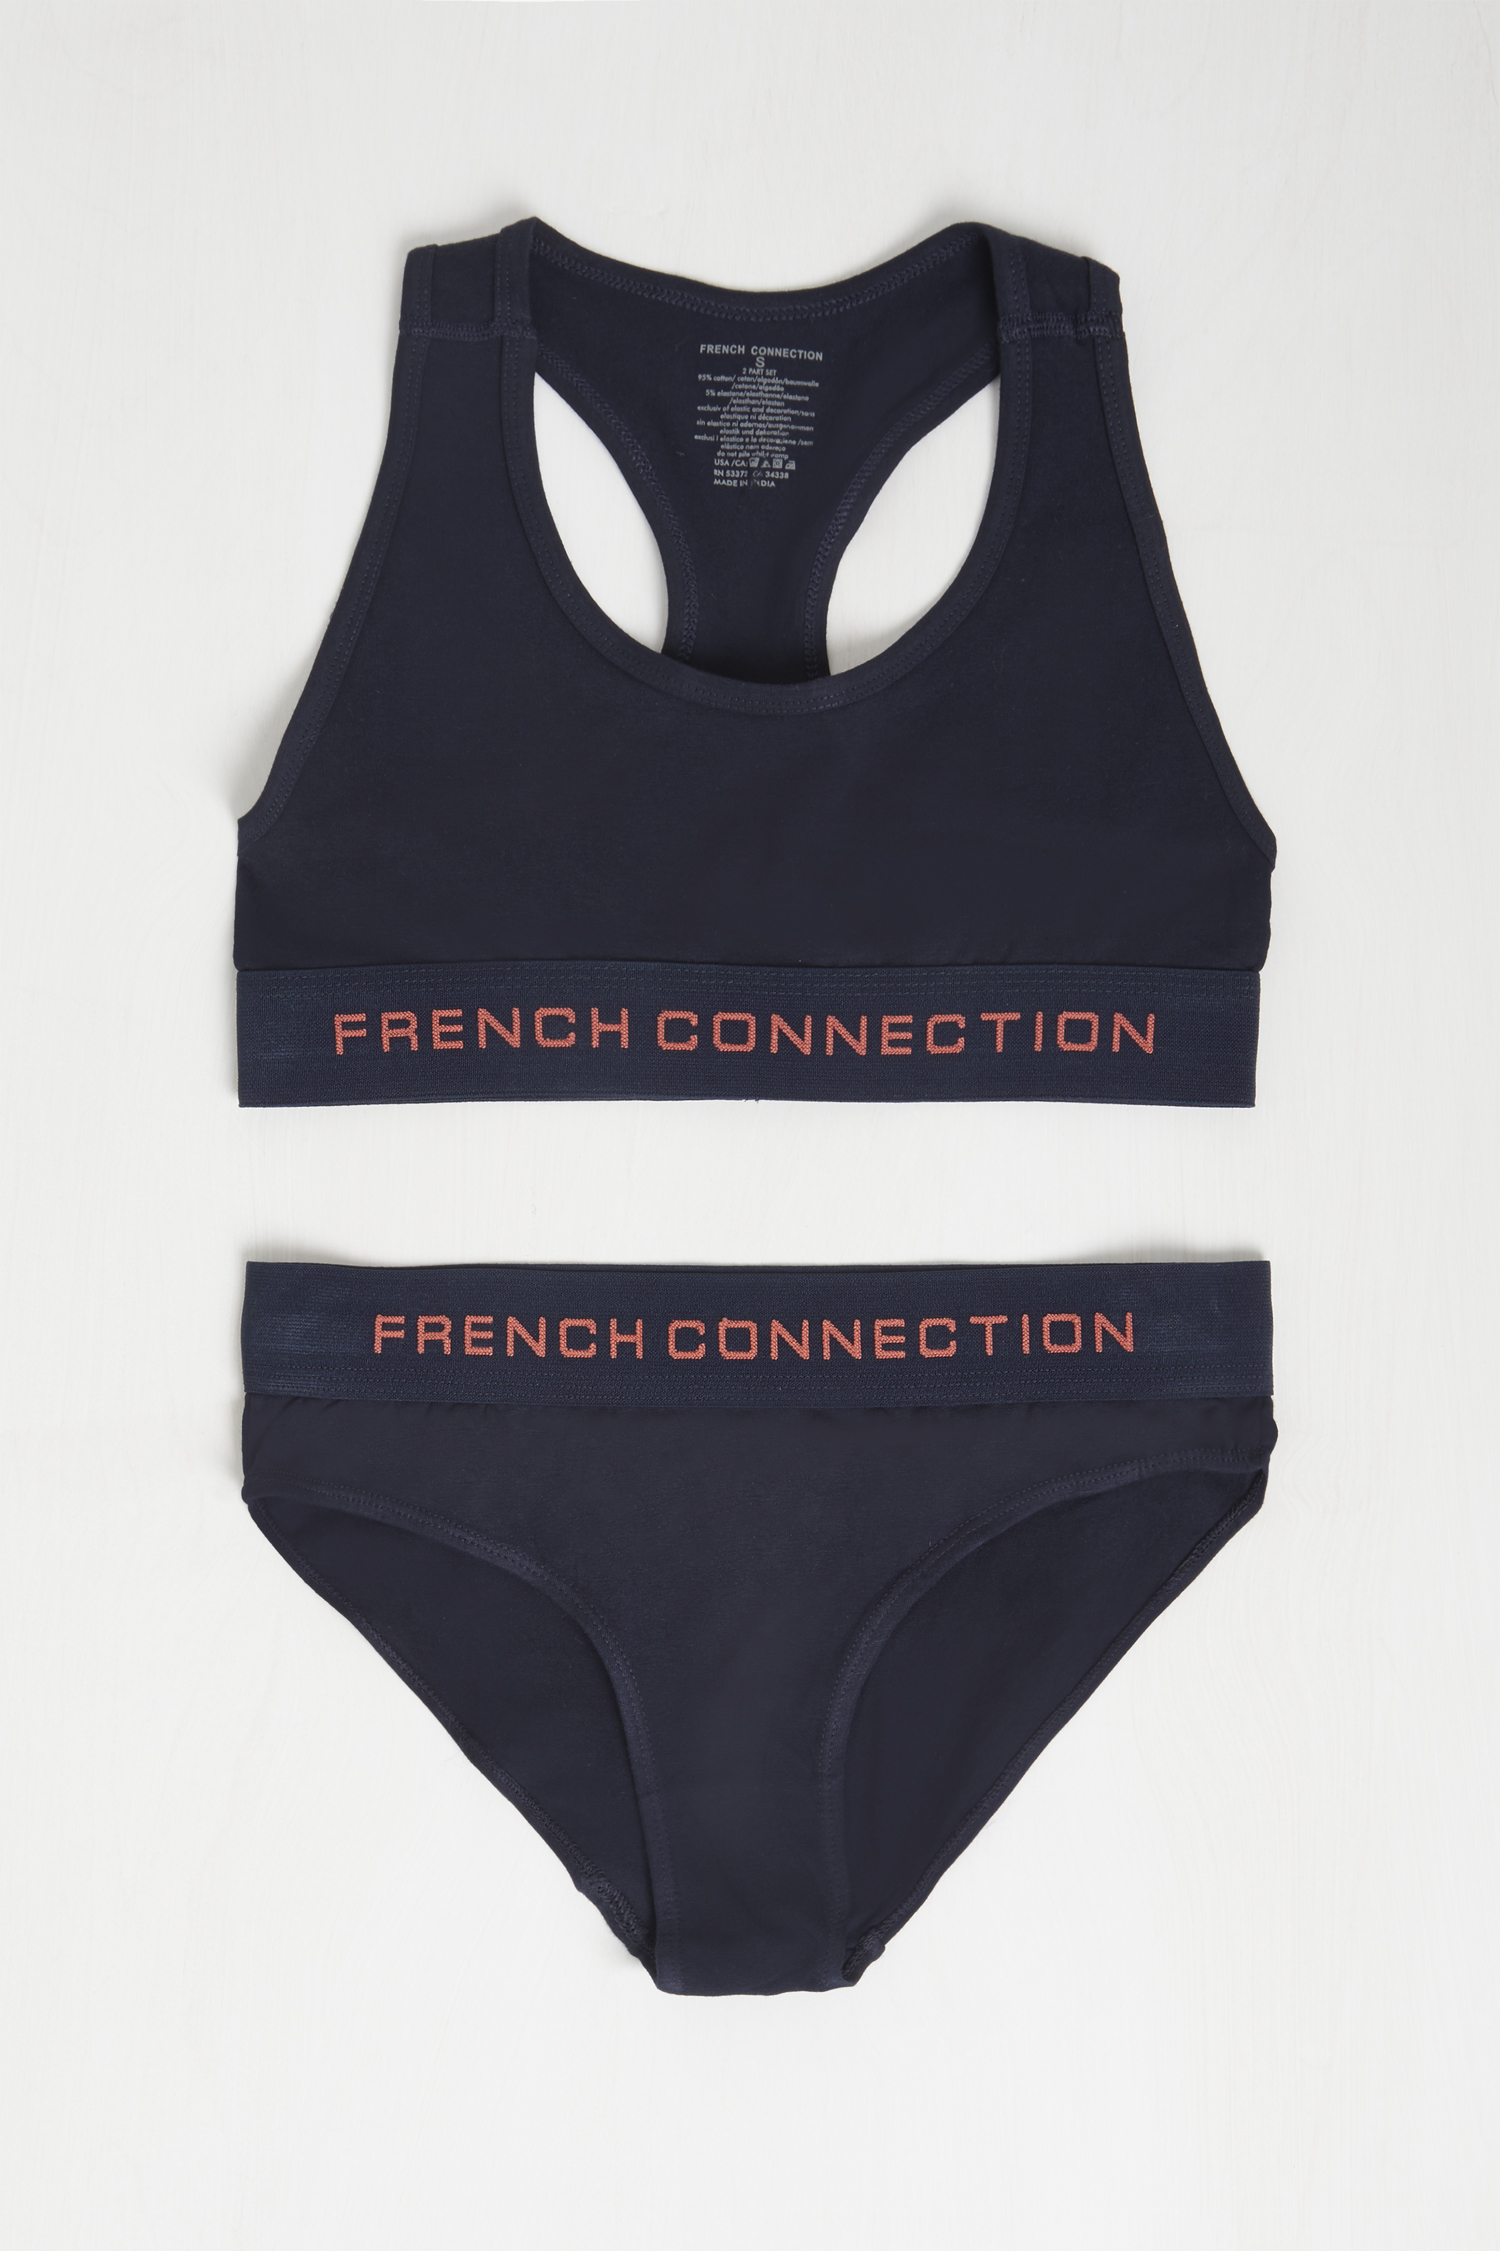 Ladies French Connection Racer Jersey Bralette And Brief Set Sizes from 8 to 16